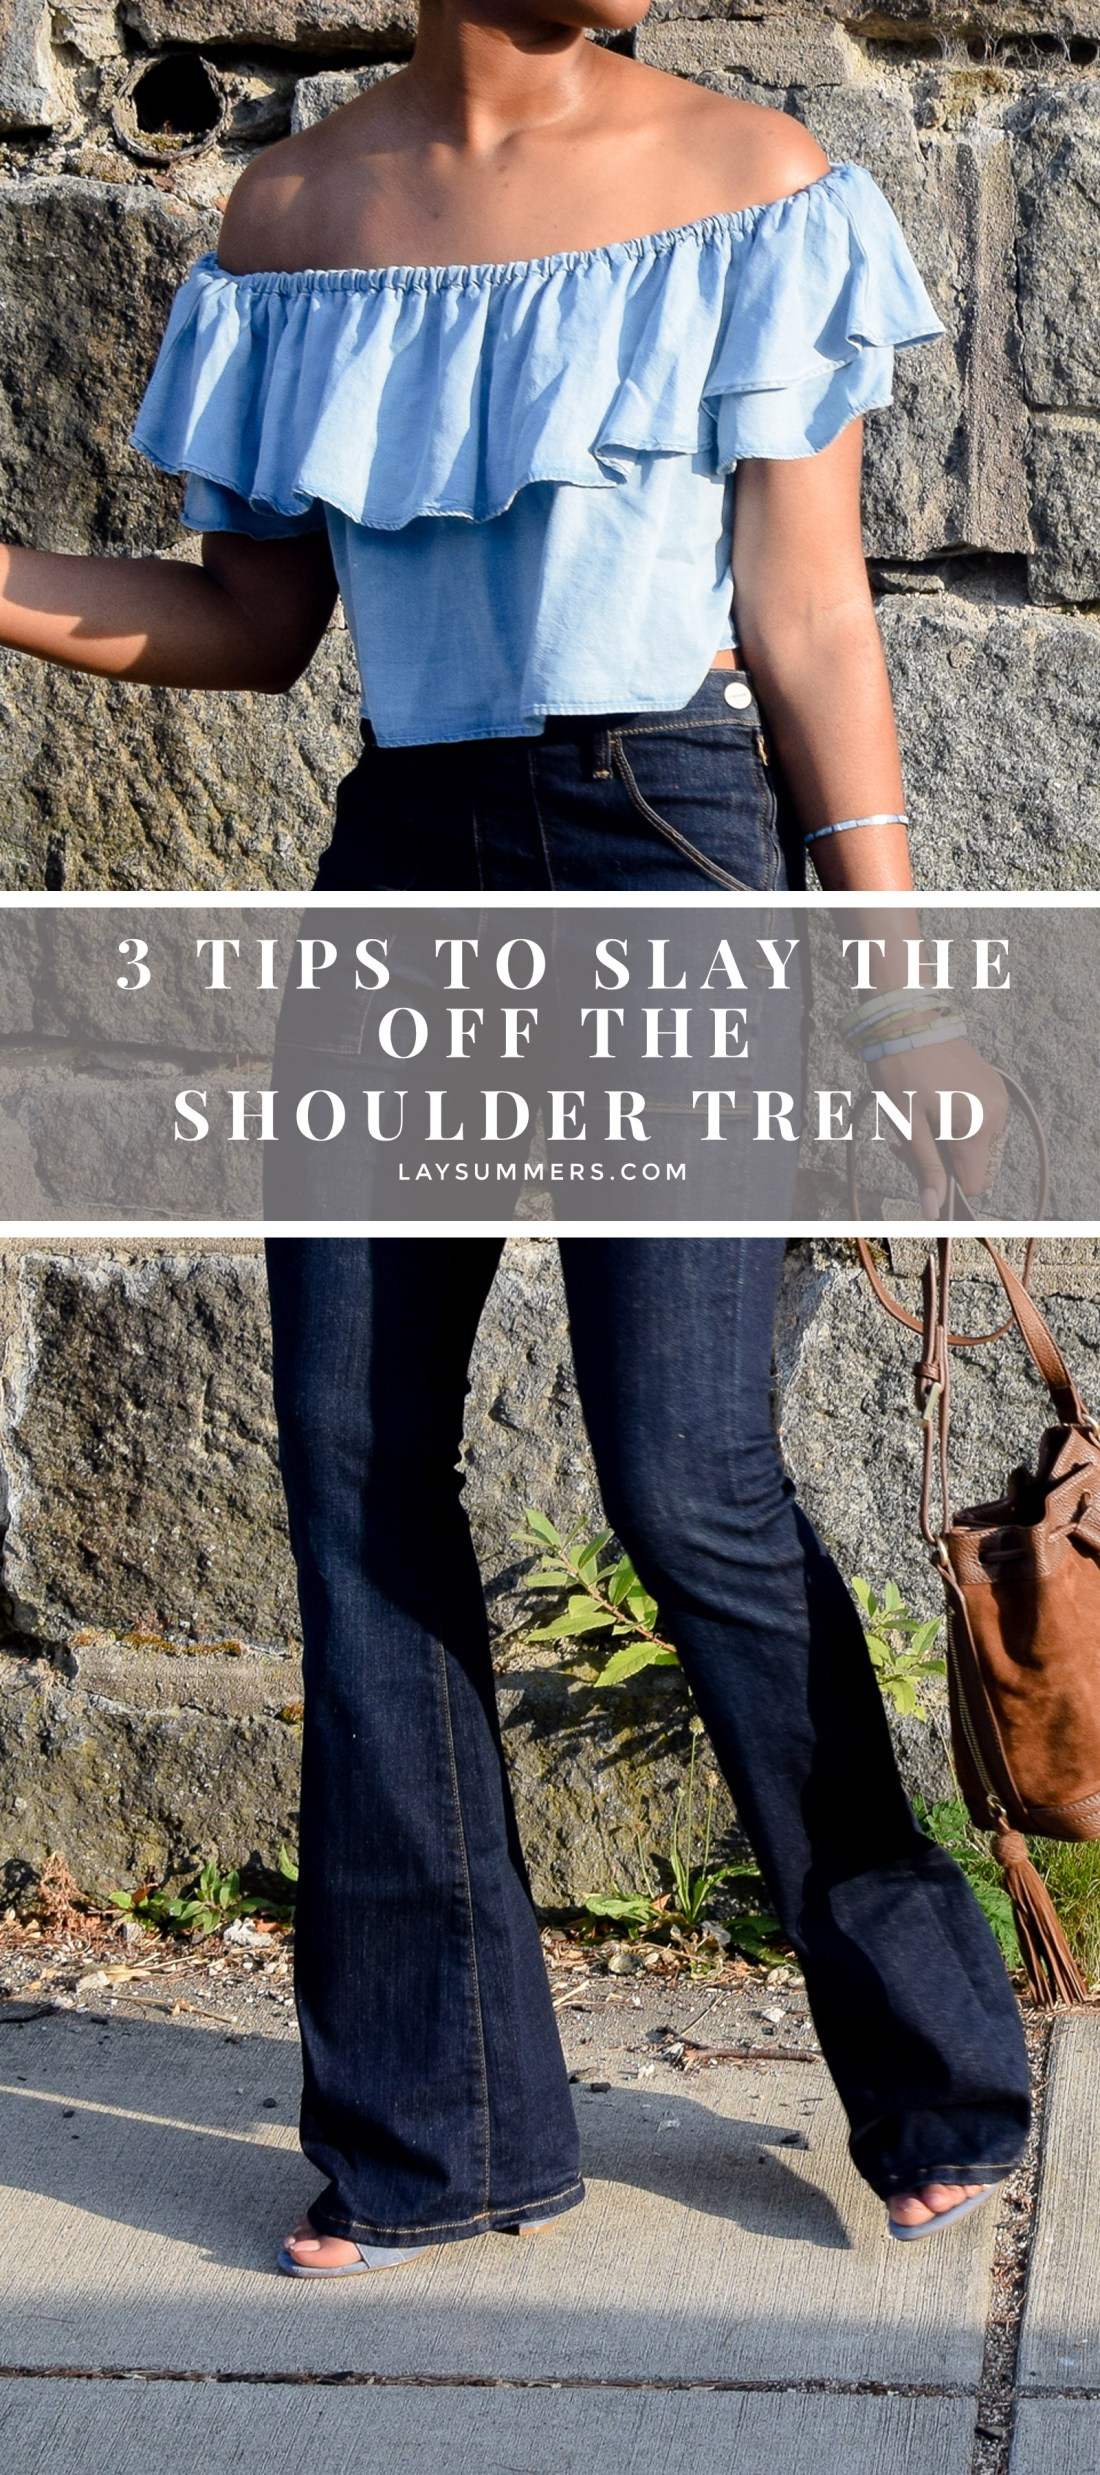 Tips To Slay the Off the Shoulder Trend